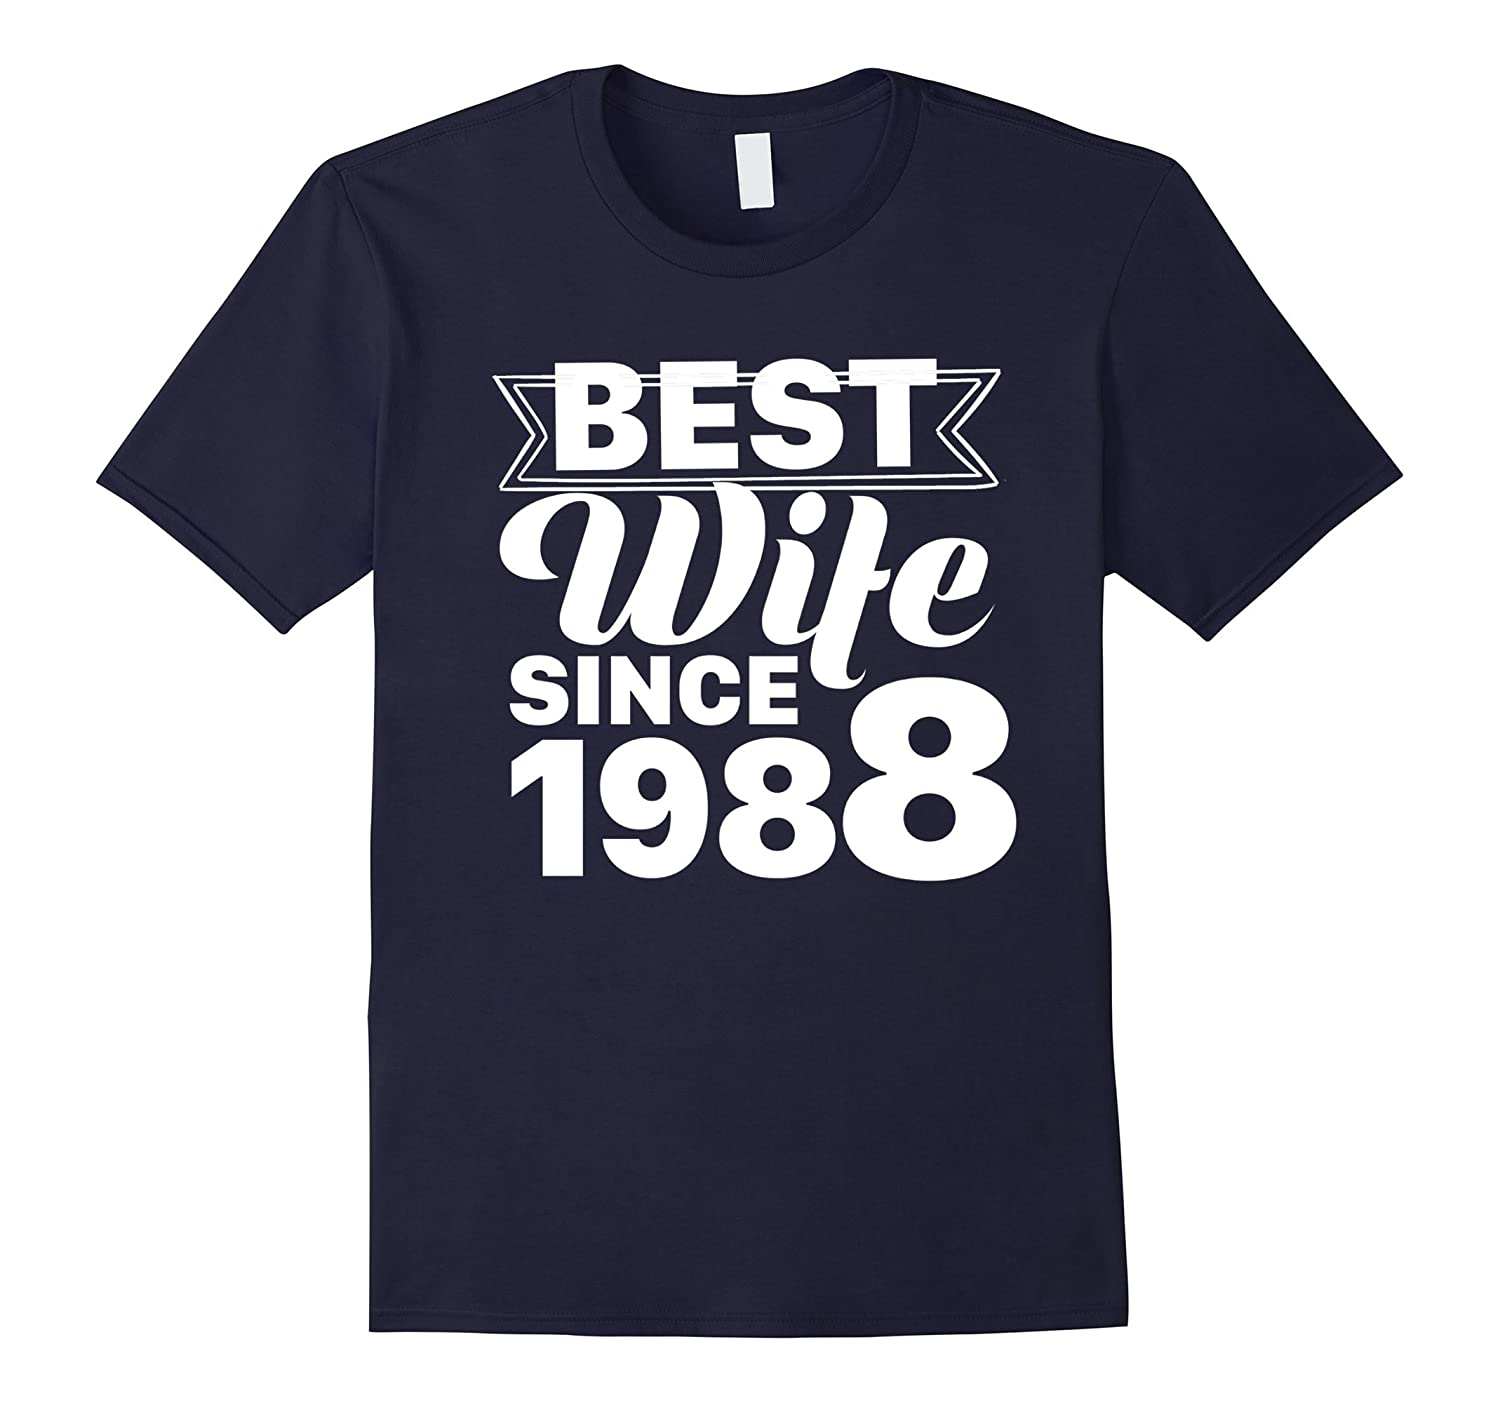 29th Wedding Anniversary Gift Ideas For Her-Wife Since 1988-Art